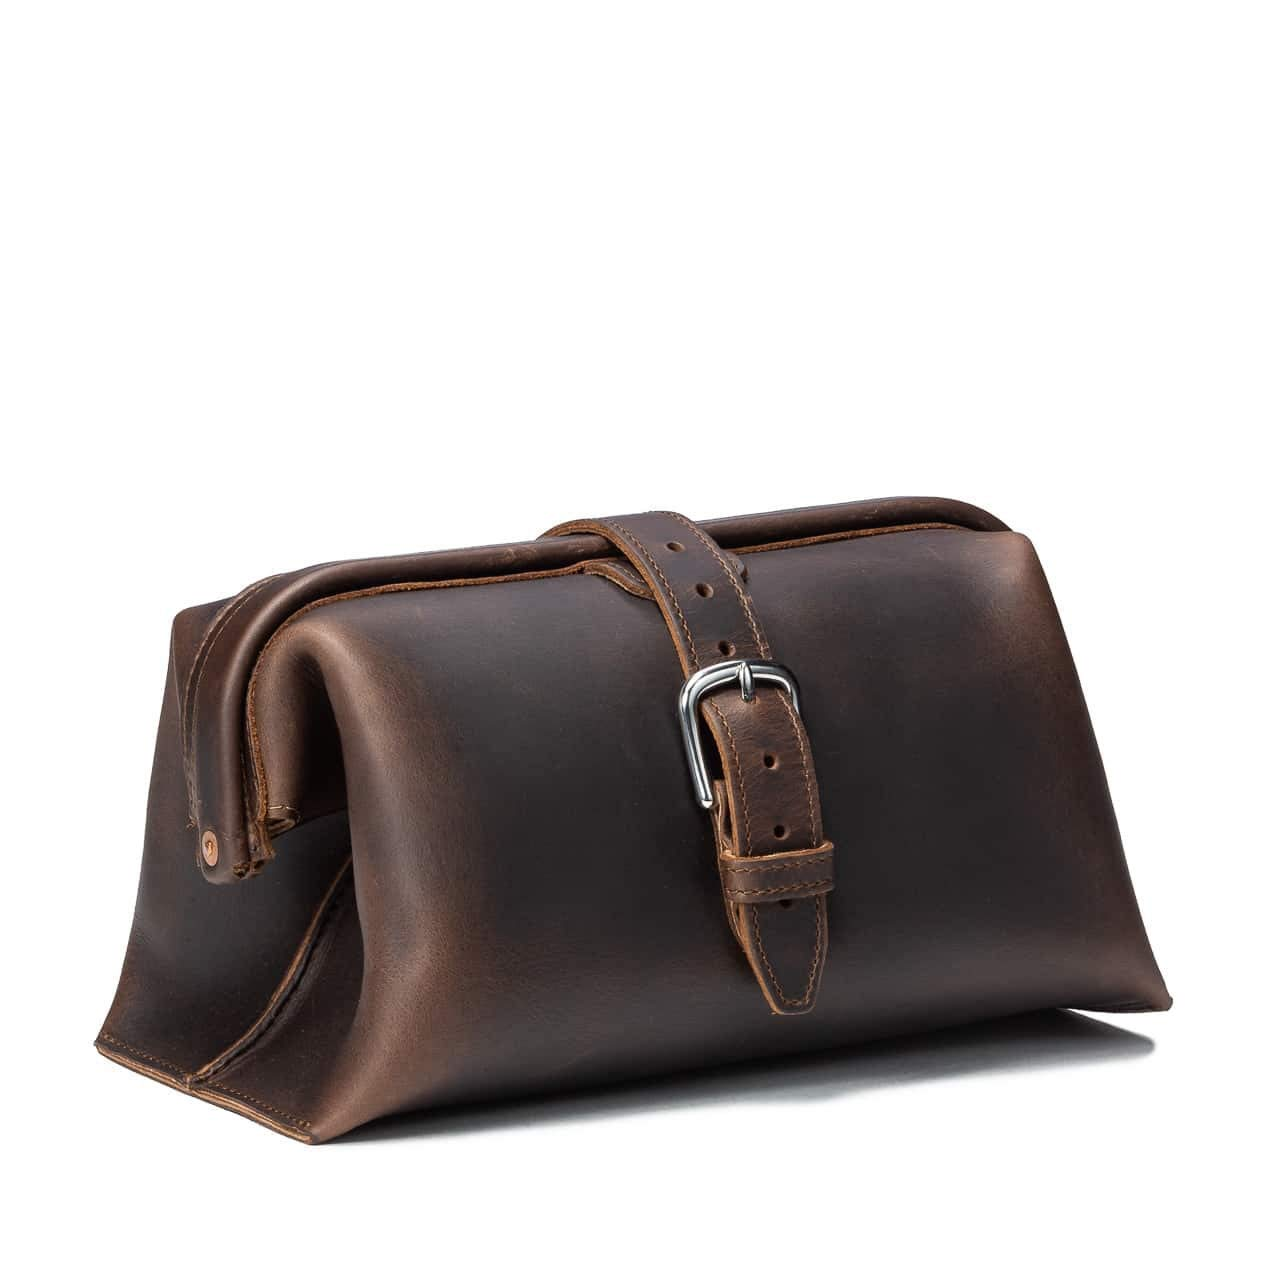 Saddleback Leather Co. Expandable Full Grain Leather Quality Toiletry Travel Bag Dopp Kit Shower Bathroom Accessory Includes 100 Year Warranty by Saddleback Leather Co. (Image #1)